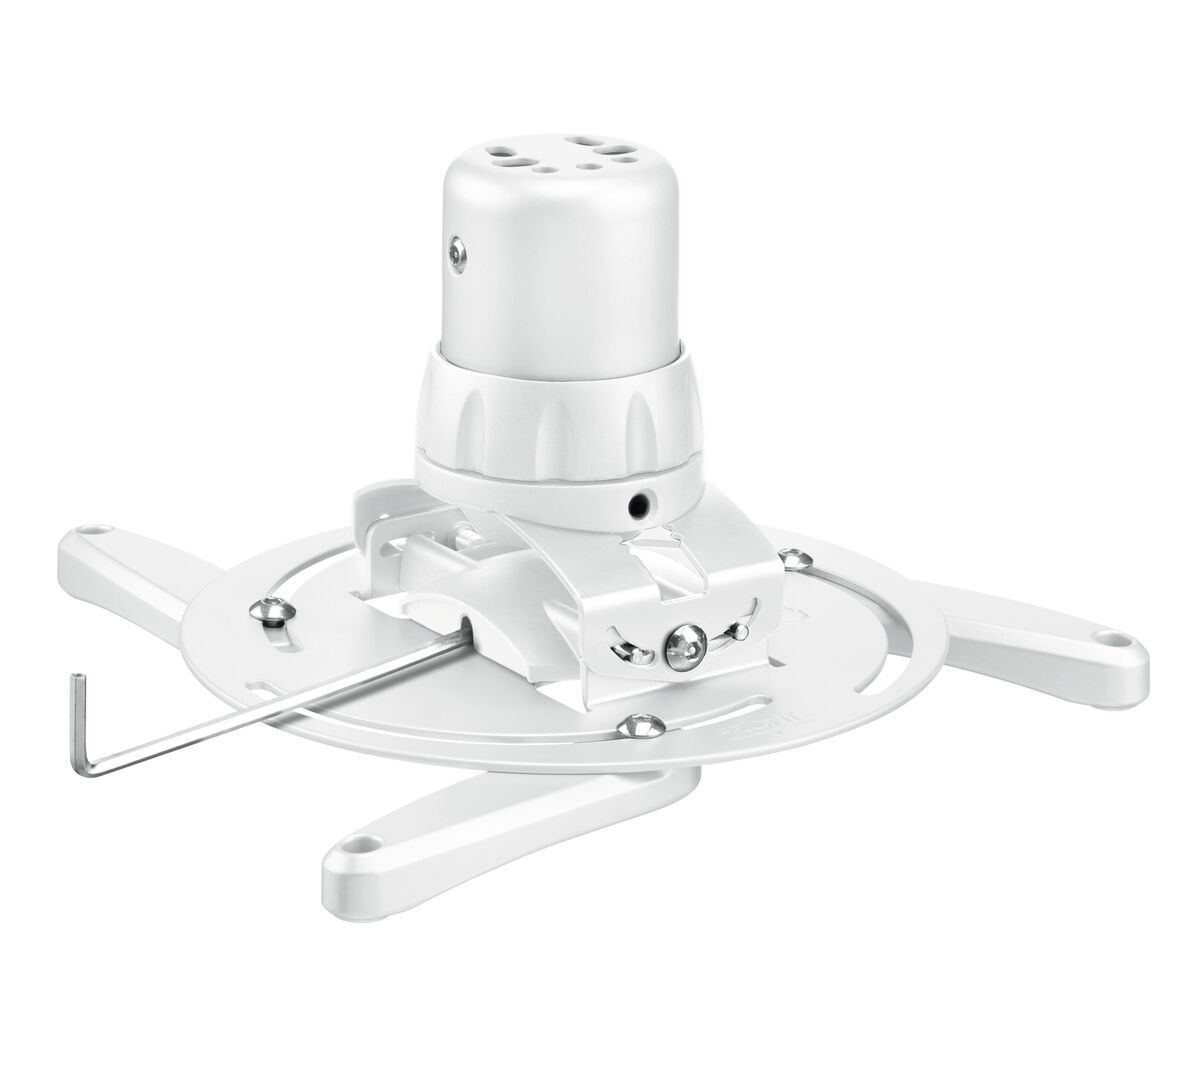 Vogel's PPC 1500 Projector ceiling mount white - Application